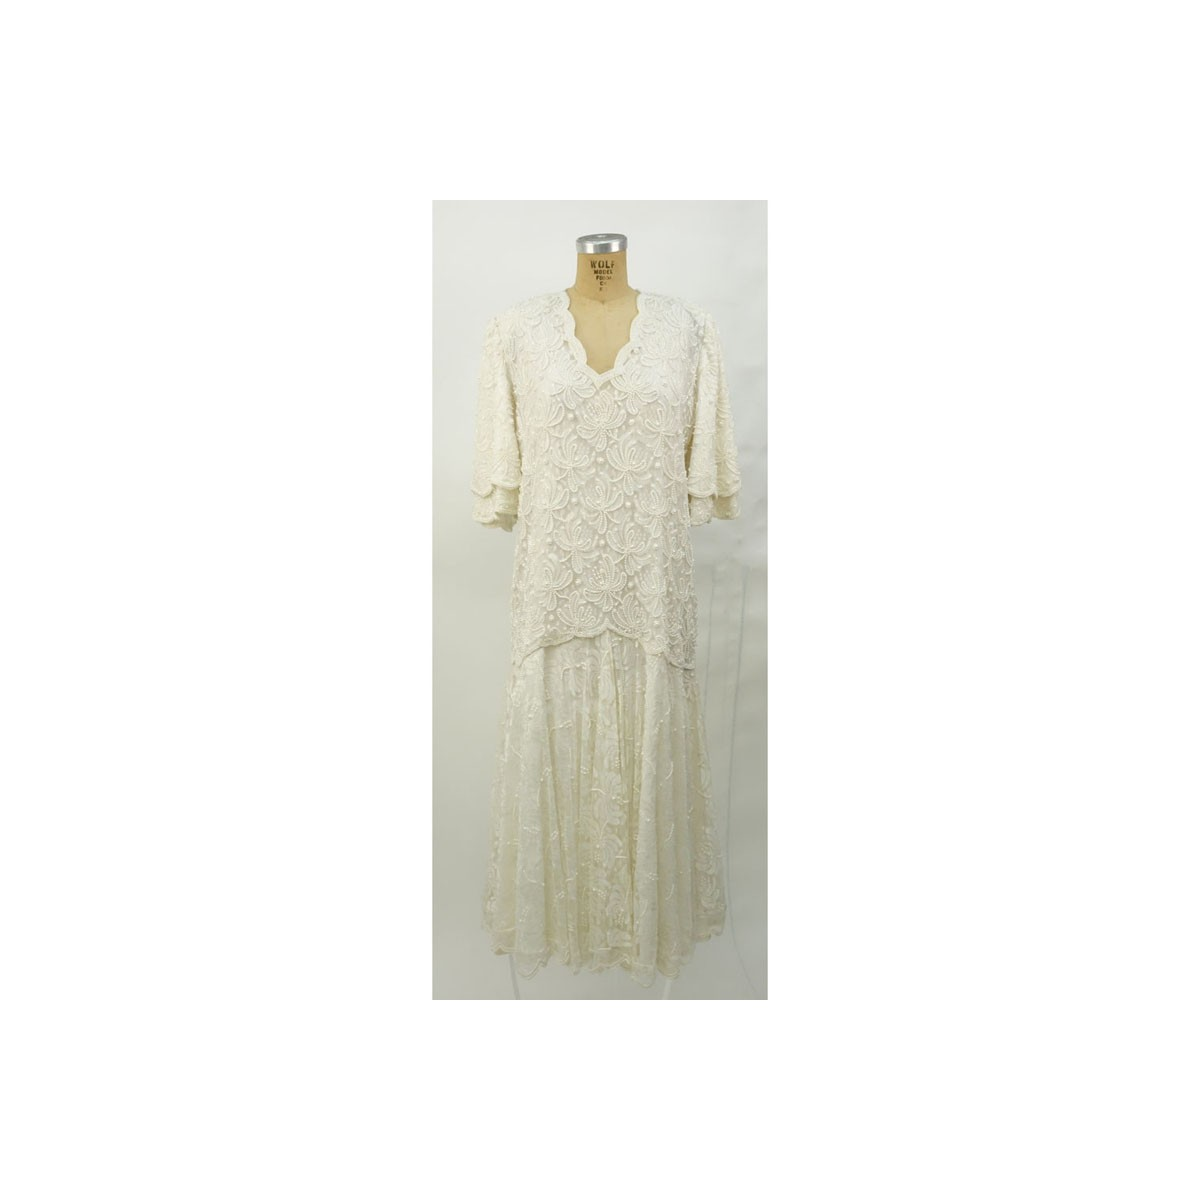 Vintage Ivory Color Beaded and Sequined Evening Dress. Some stain